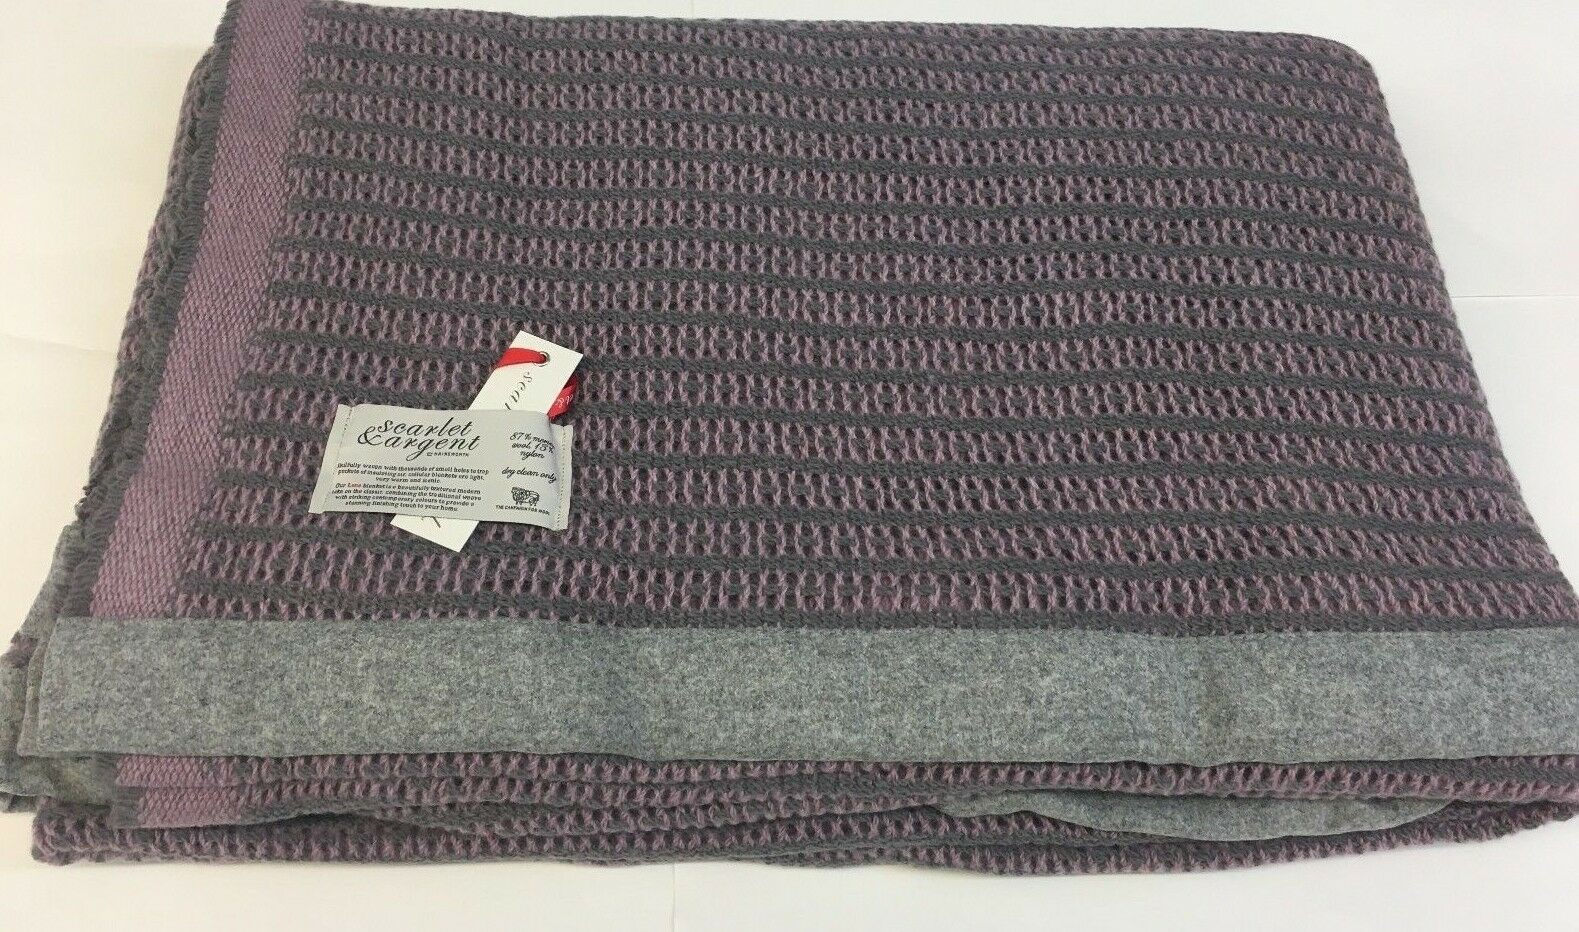 Svoiturelet & Argent Leno thermique tissage Ardoise Mauve Taille Queen, made in England